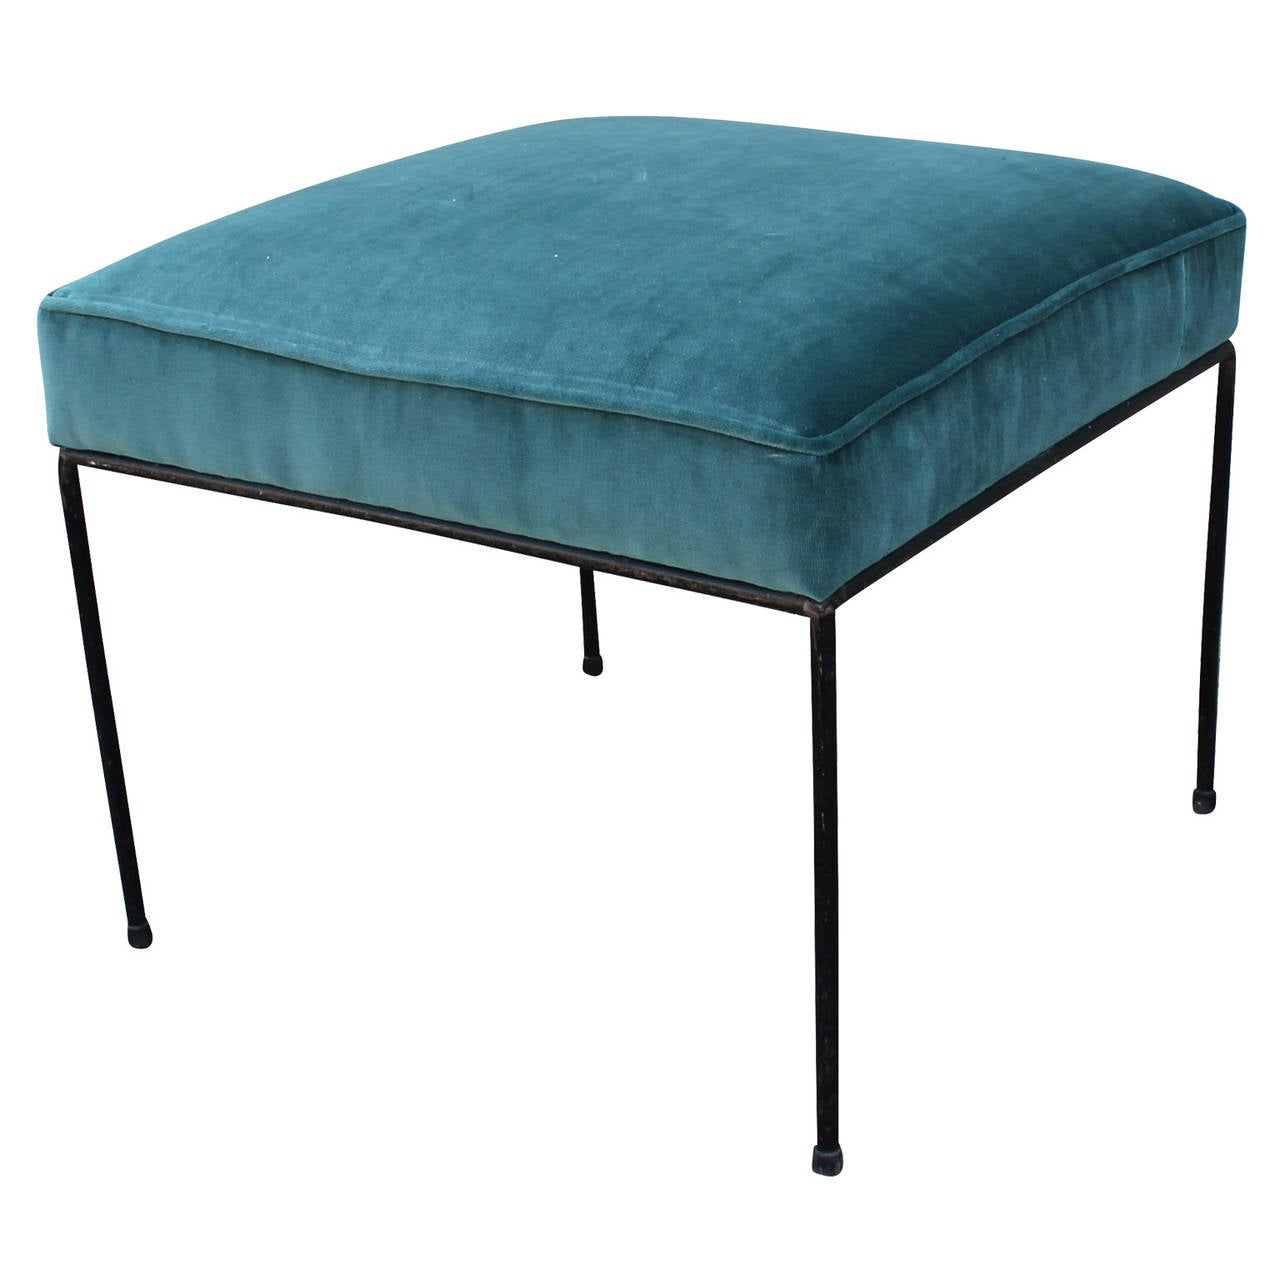 Pair of paul mccobb wrought iron stools in teal blue velvet at 1stdibs - Teal blue bar stools ...